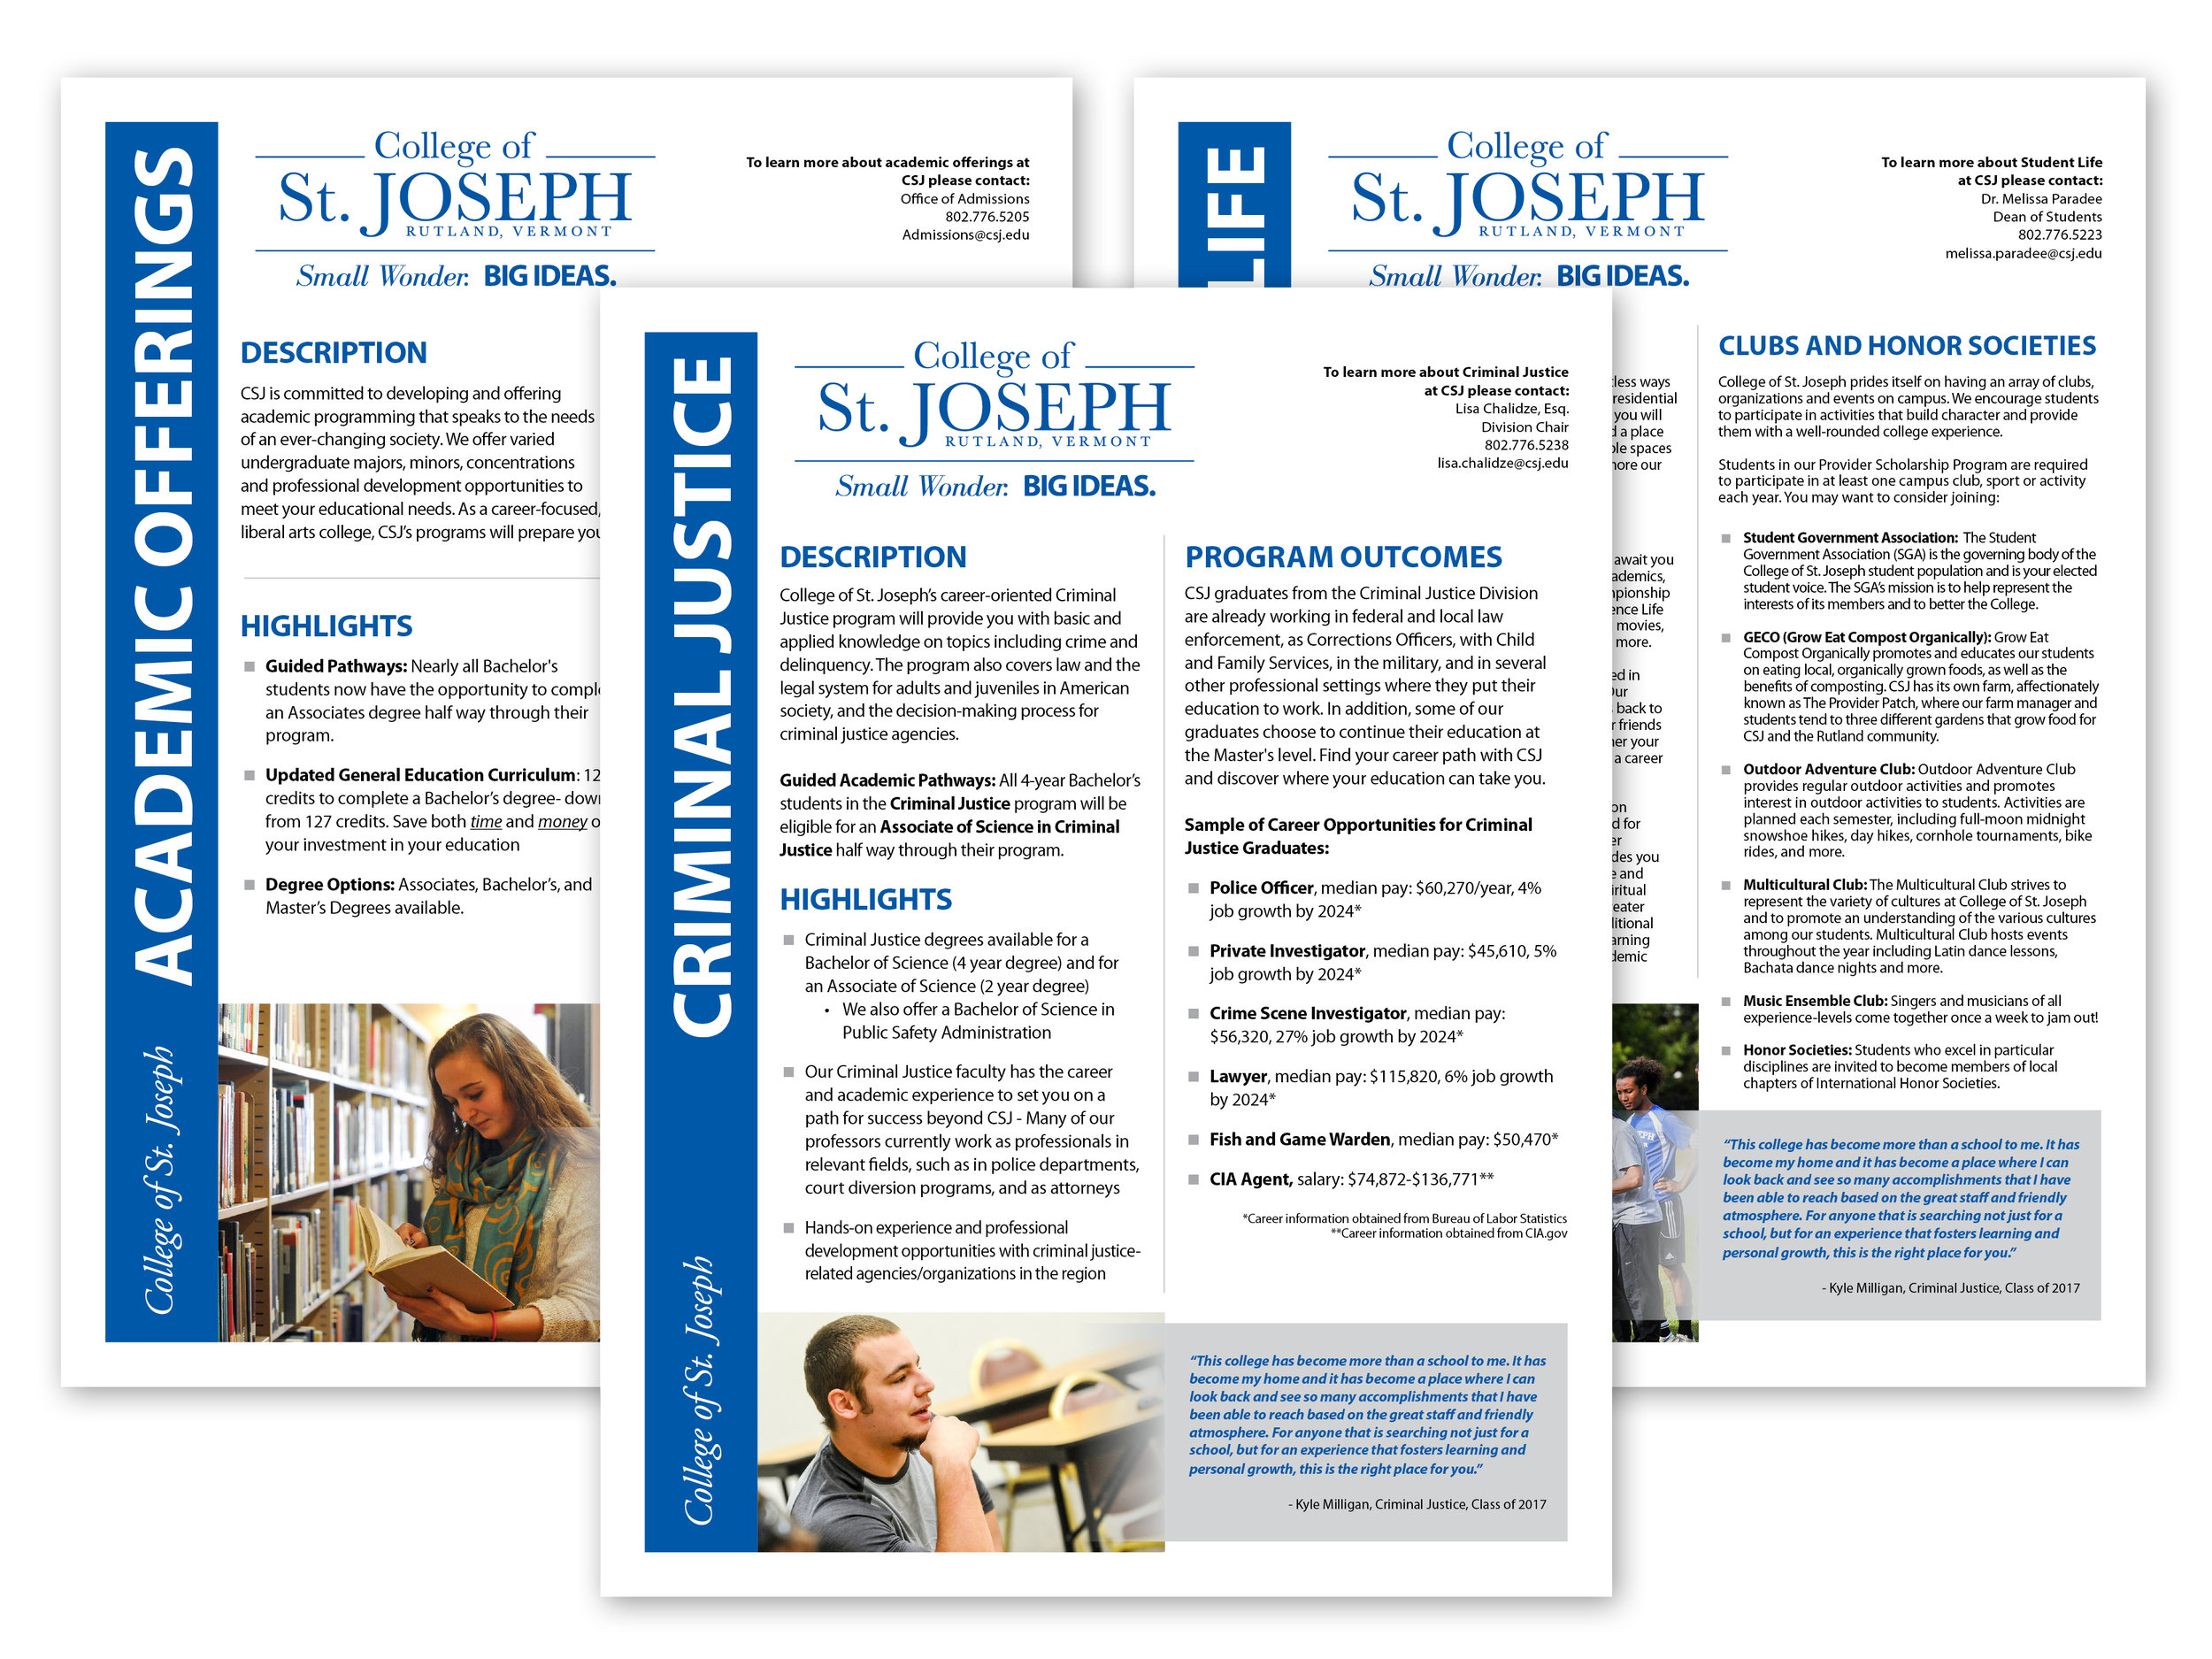 Series of 2-sided info sheets